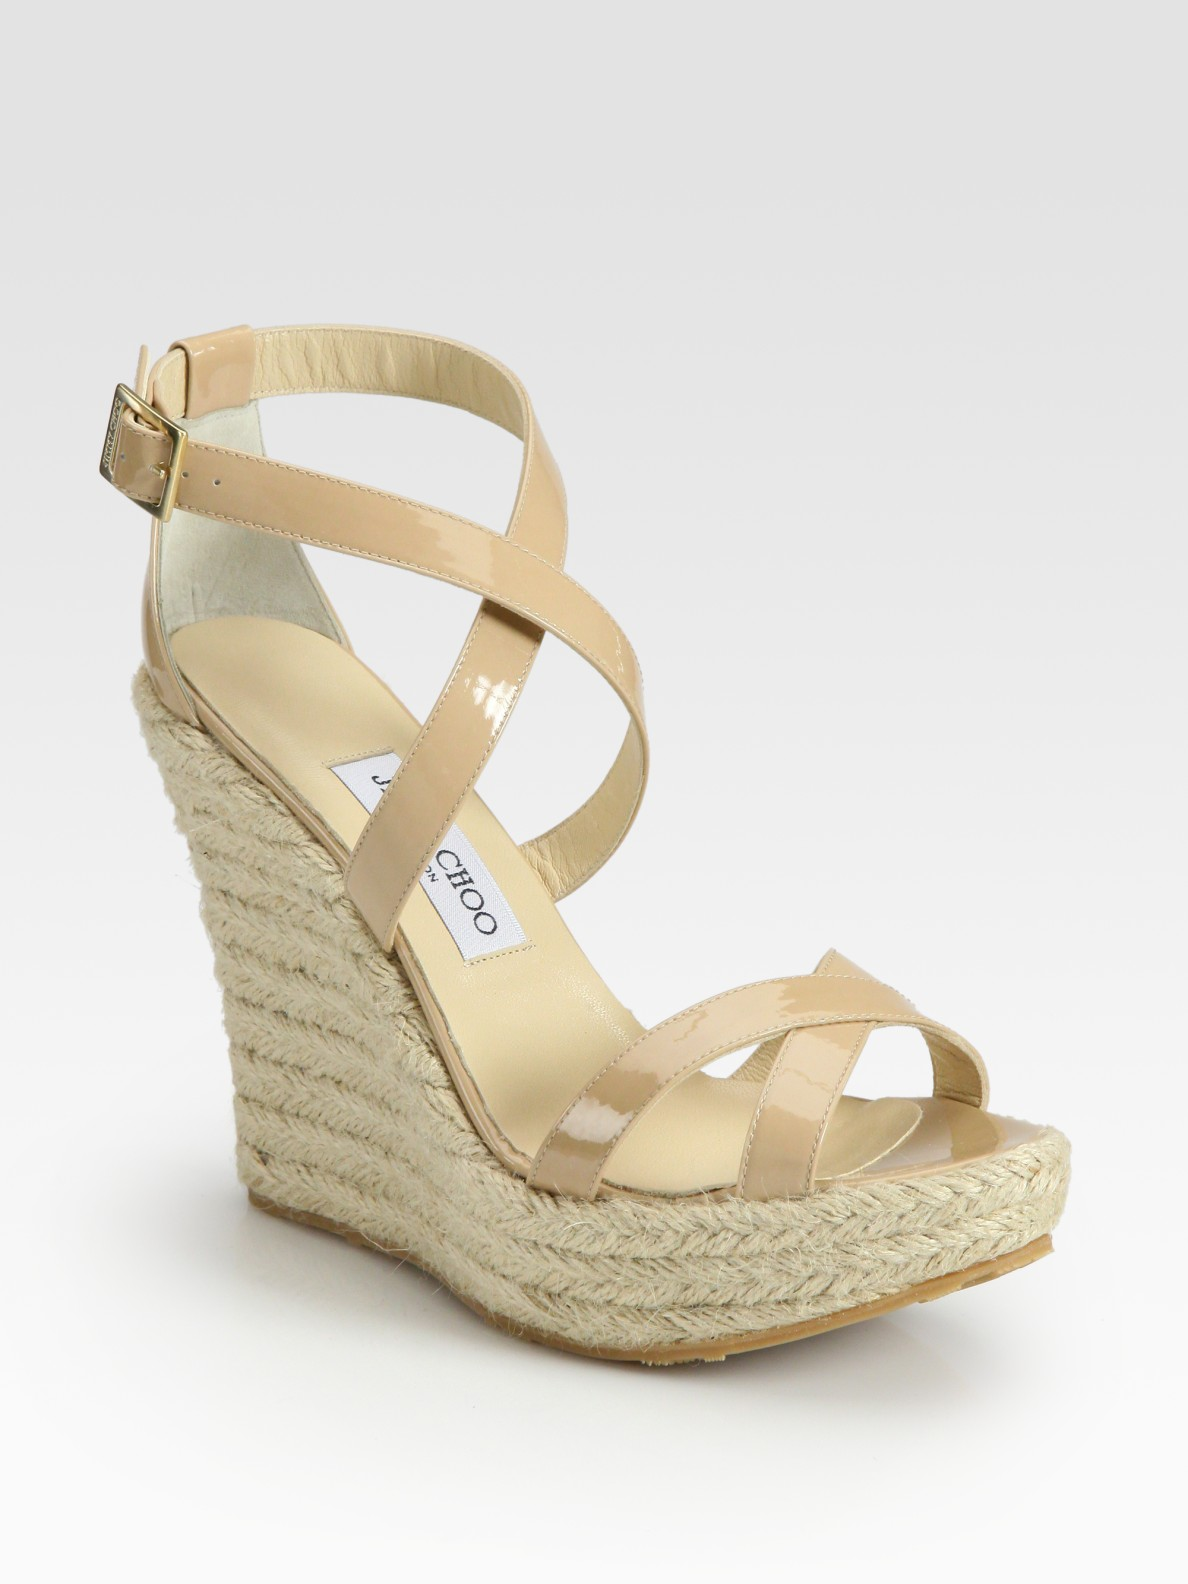 6ab54430b65b8 ... discount code for lyst jimmy choo porto patent leather espadrille wedge  sandals in ac4a8 35294